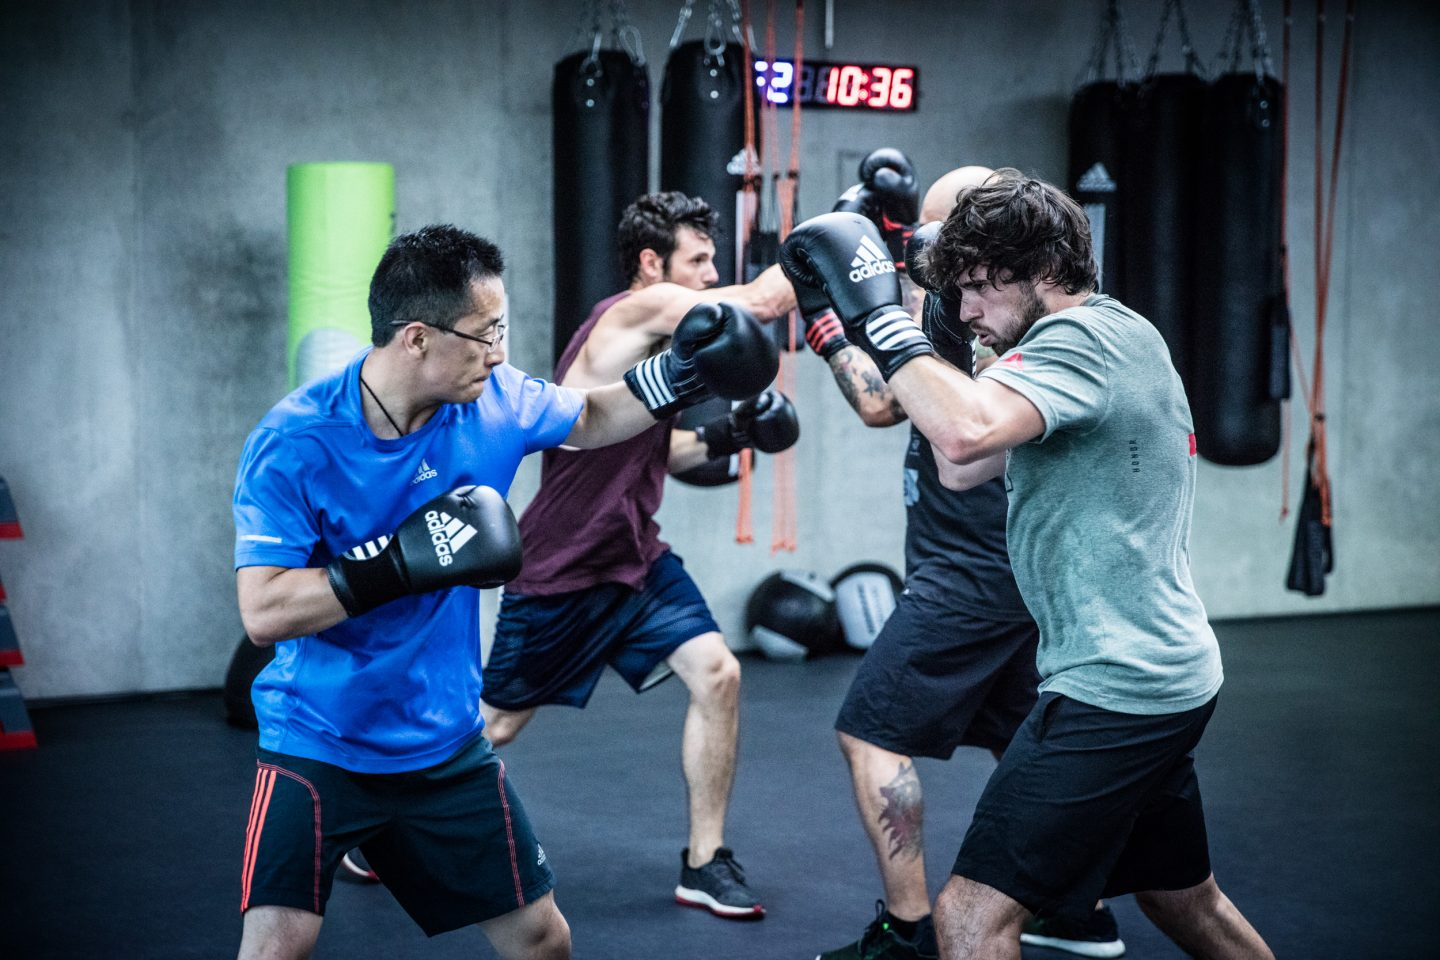 Two guys at a boxing session practice fighting with gloves on